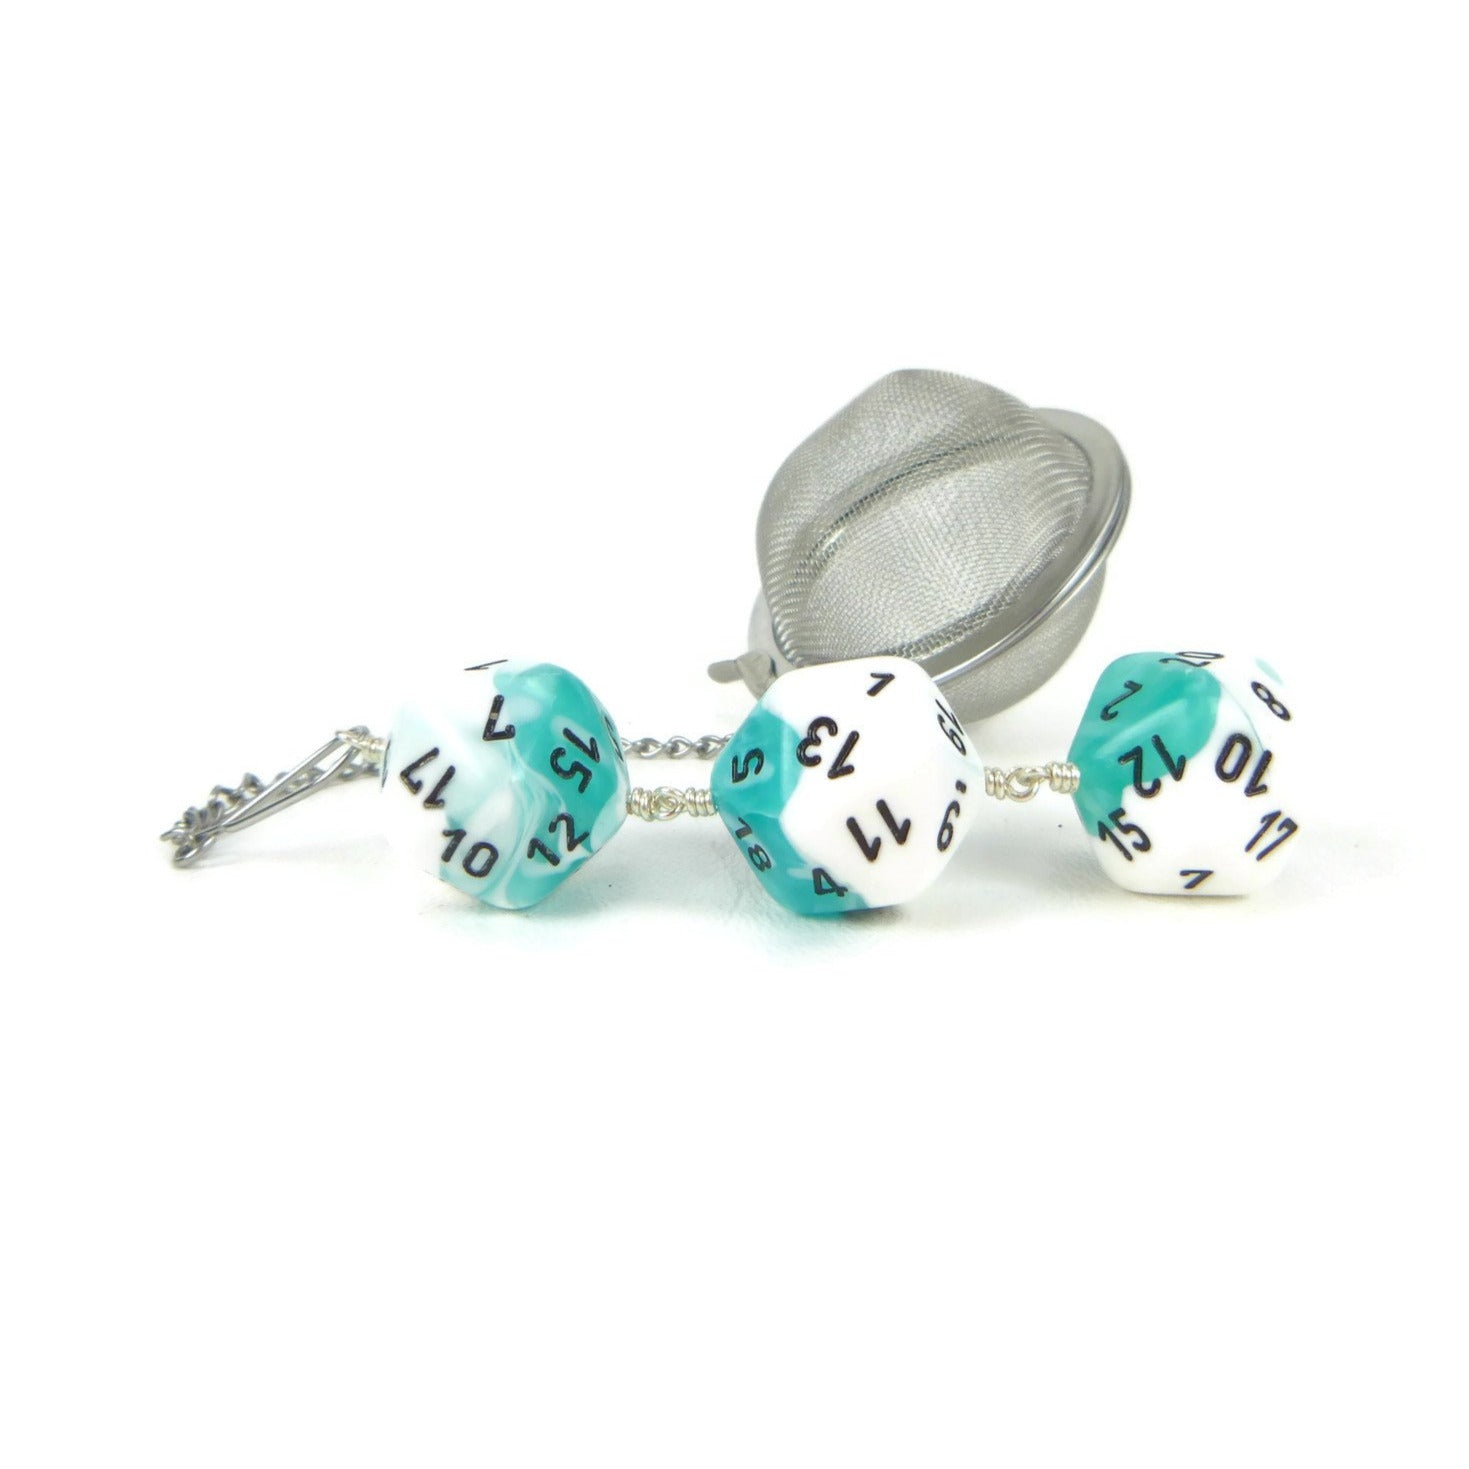 Tea Infuser with teal and white dice trio